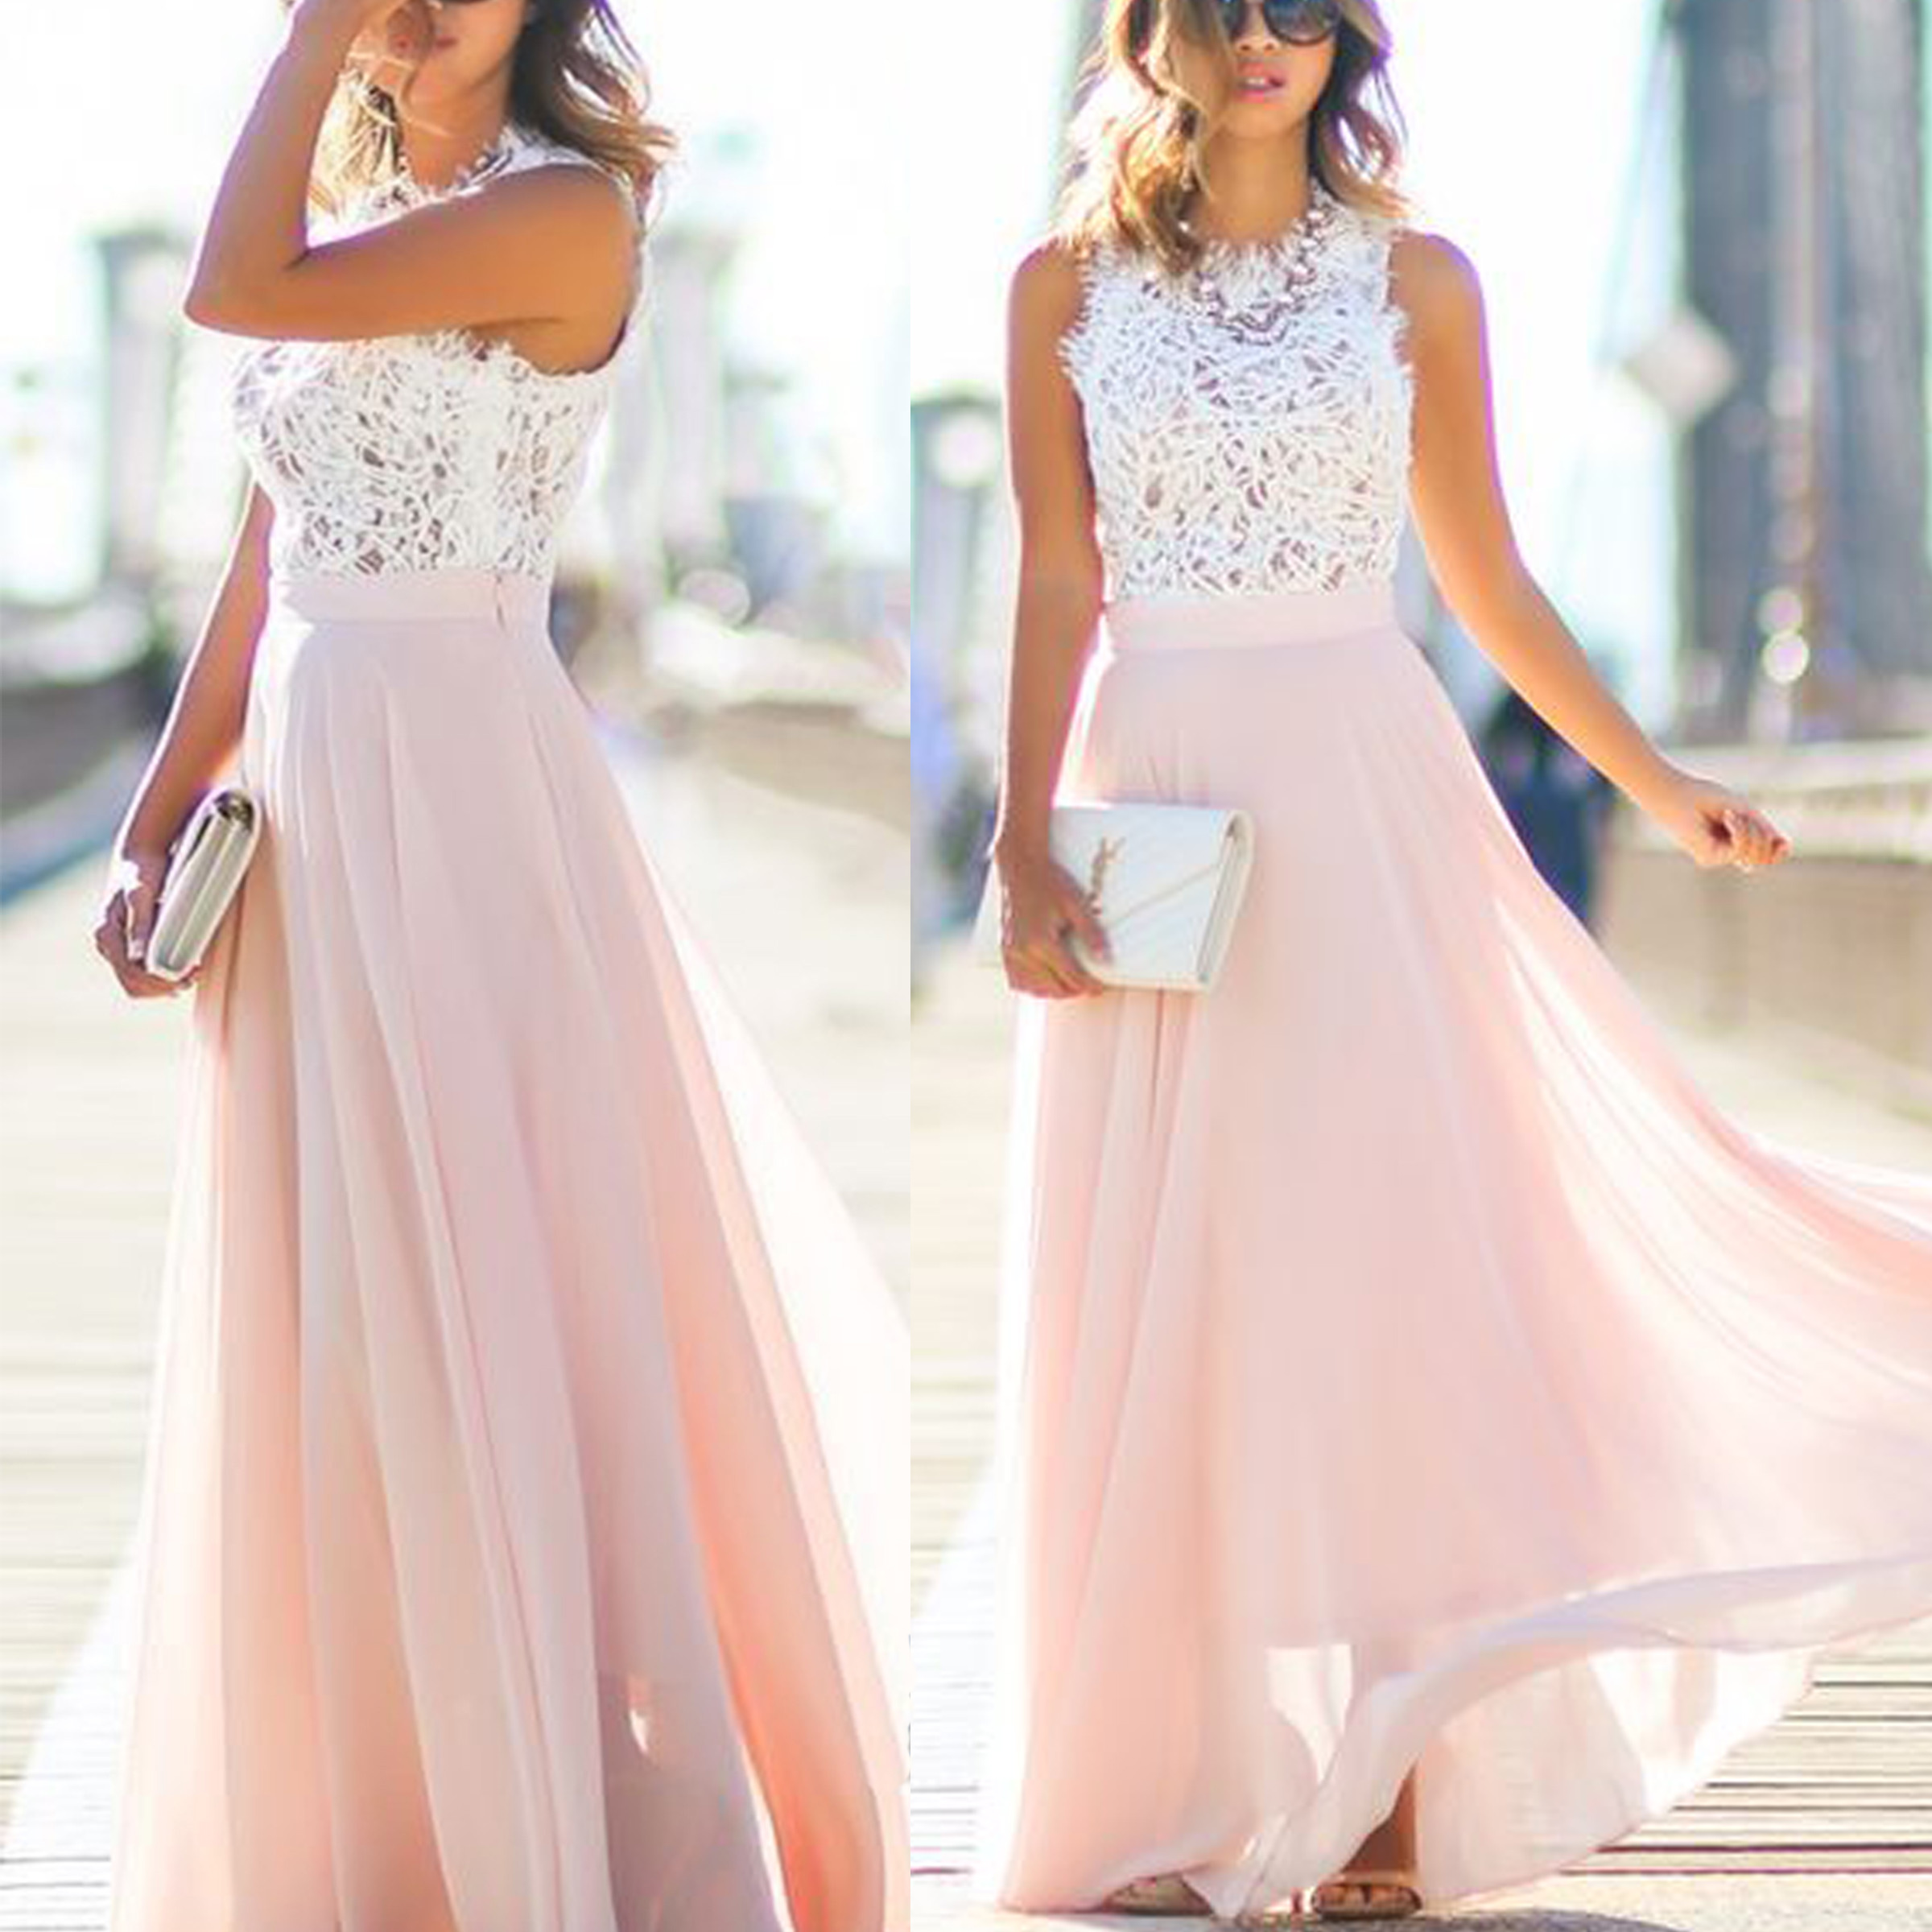 Blush Pink Lace Prom Dress 2016 Long Prom Dress Lace Prom Dress